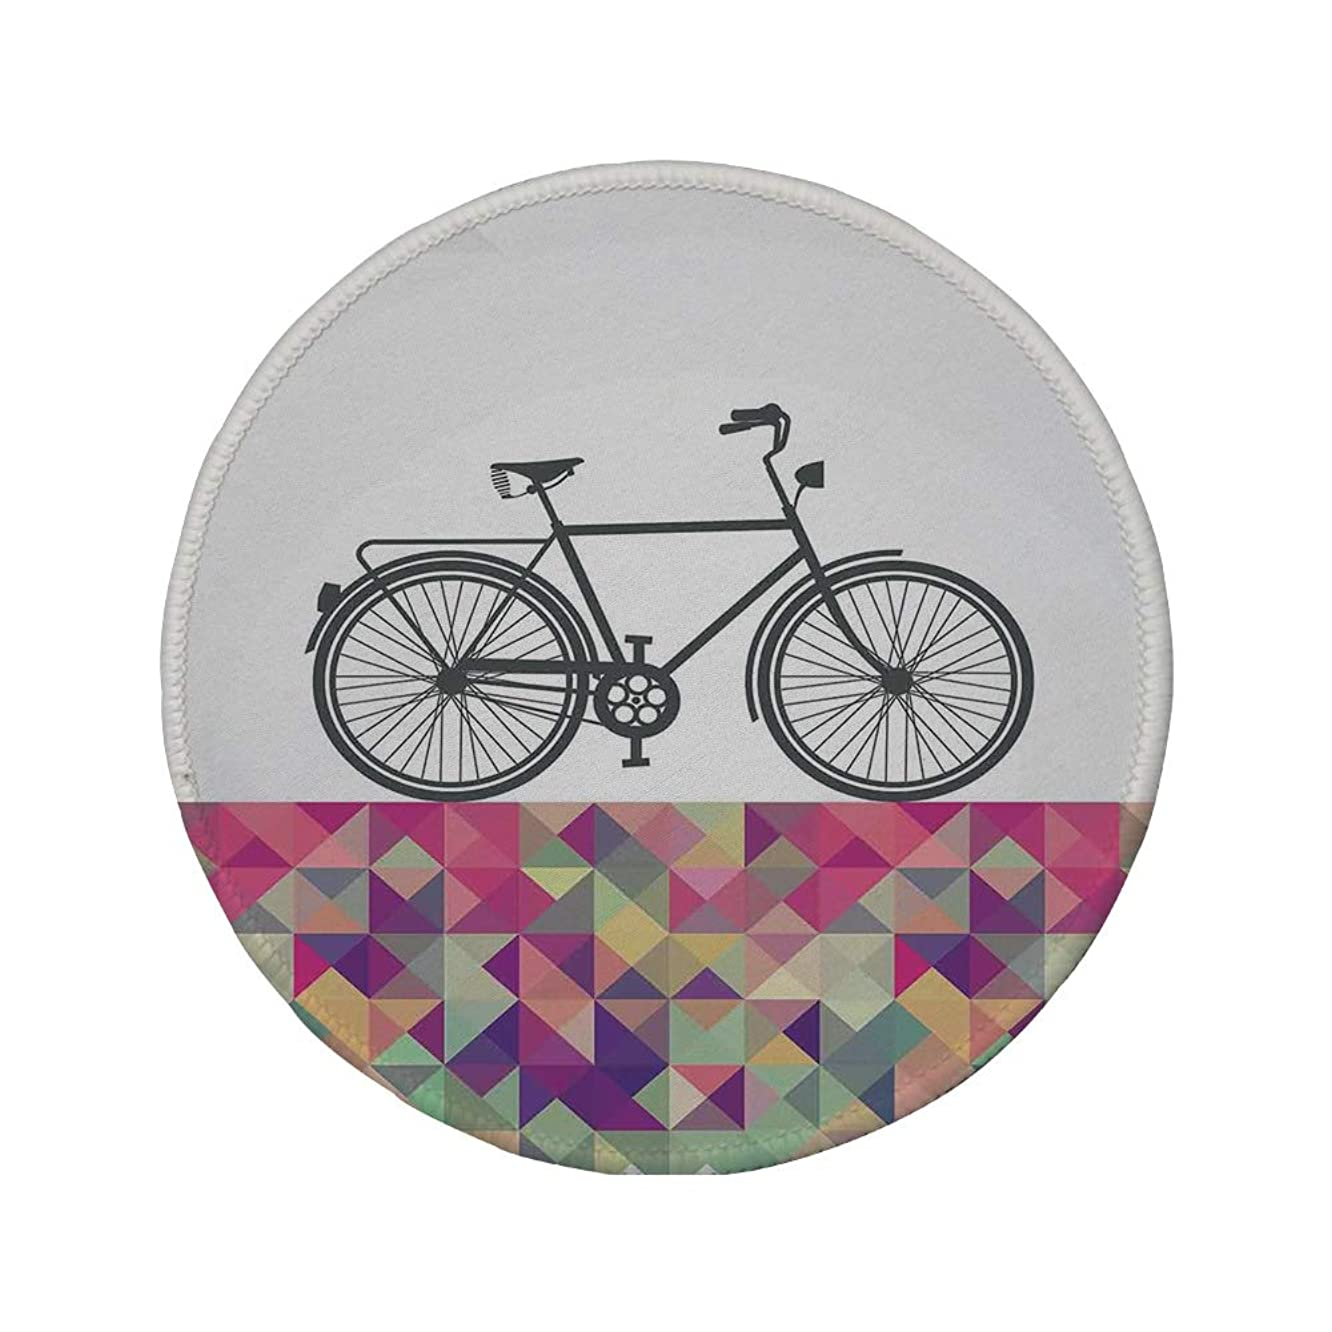 Non-Slip Rubber Round Mouse Pad,Geometric,Vintage Style Bike Over Multicolor Diamond Shaped Backdrop Triangles Hipster,Multicolor,11.8